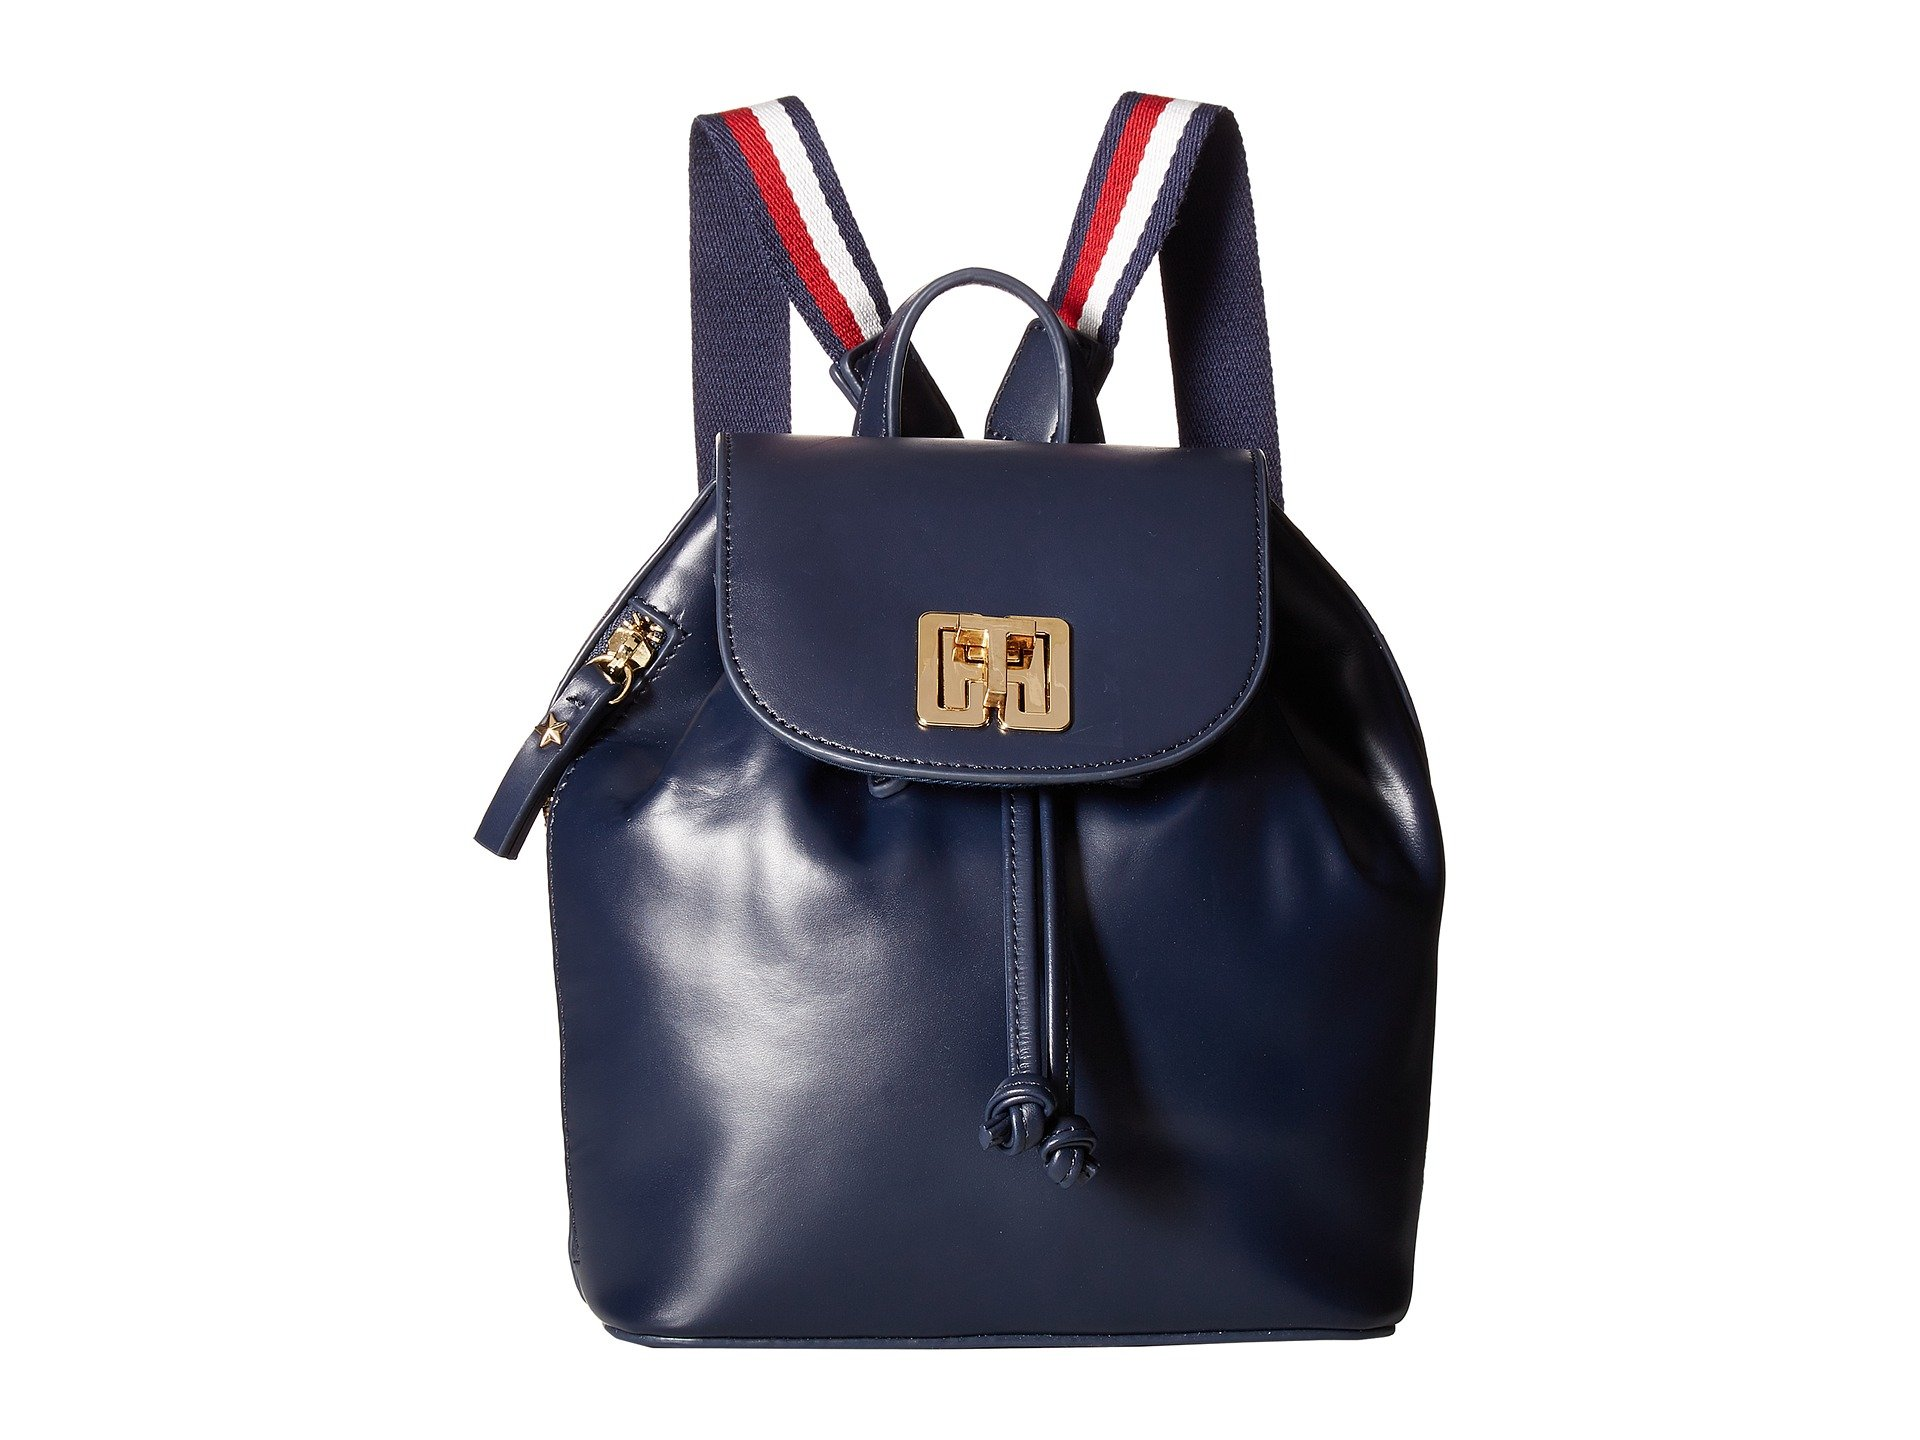 Mochila para Mujer Tommy Hilfiger TH Twist Backpack  + Tommy Hilfiger en VeoyCompro.net